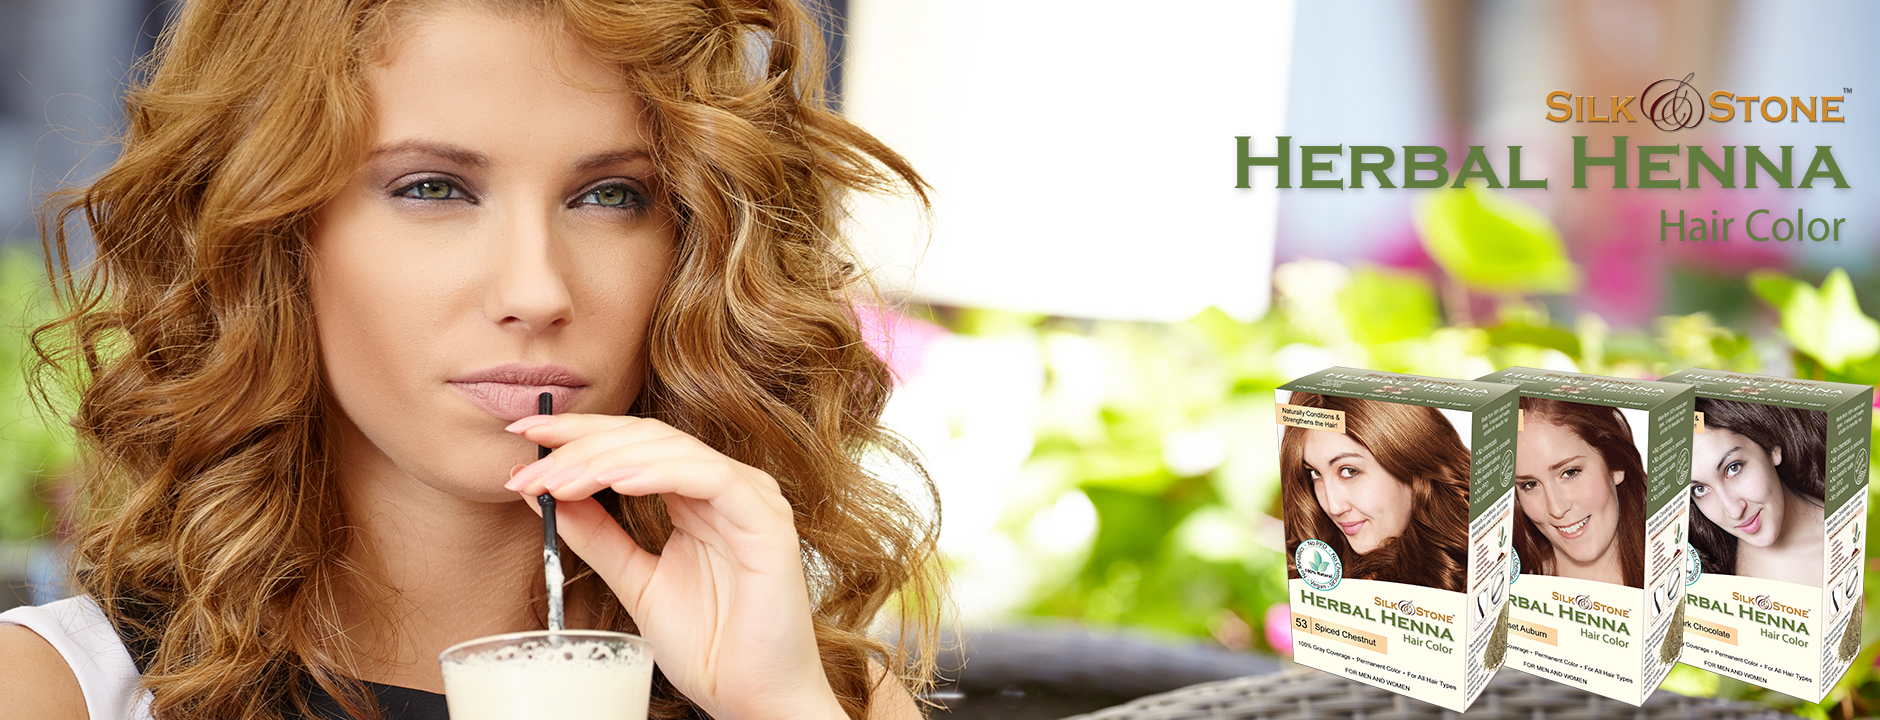 Herbal-Henna-Hair-Color